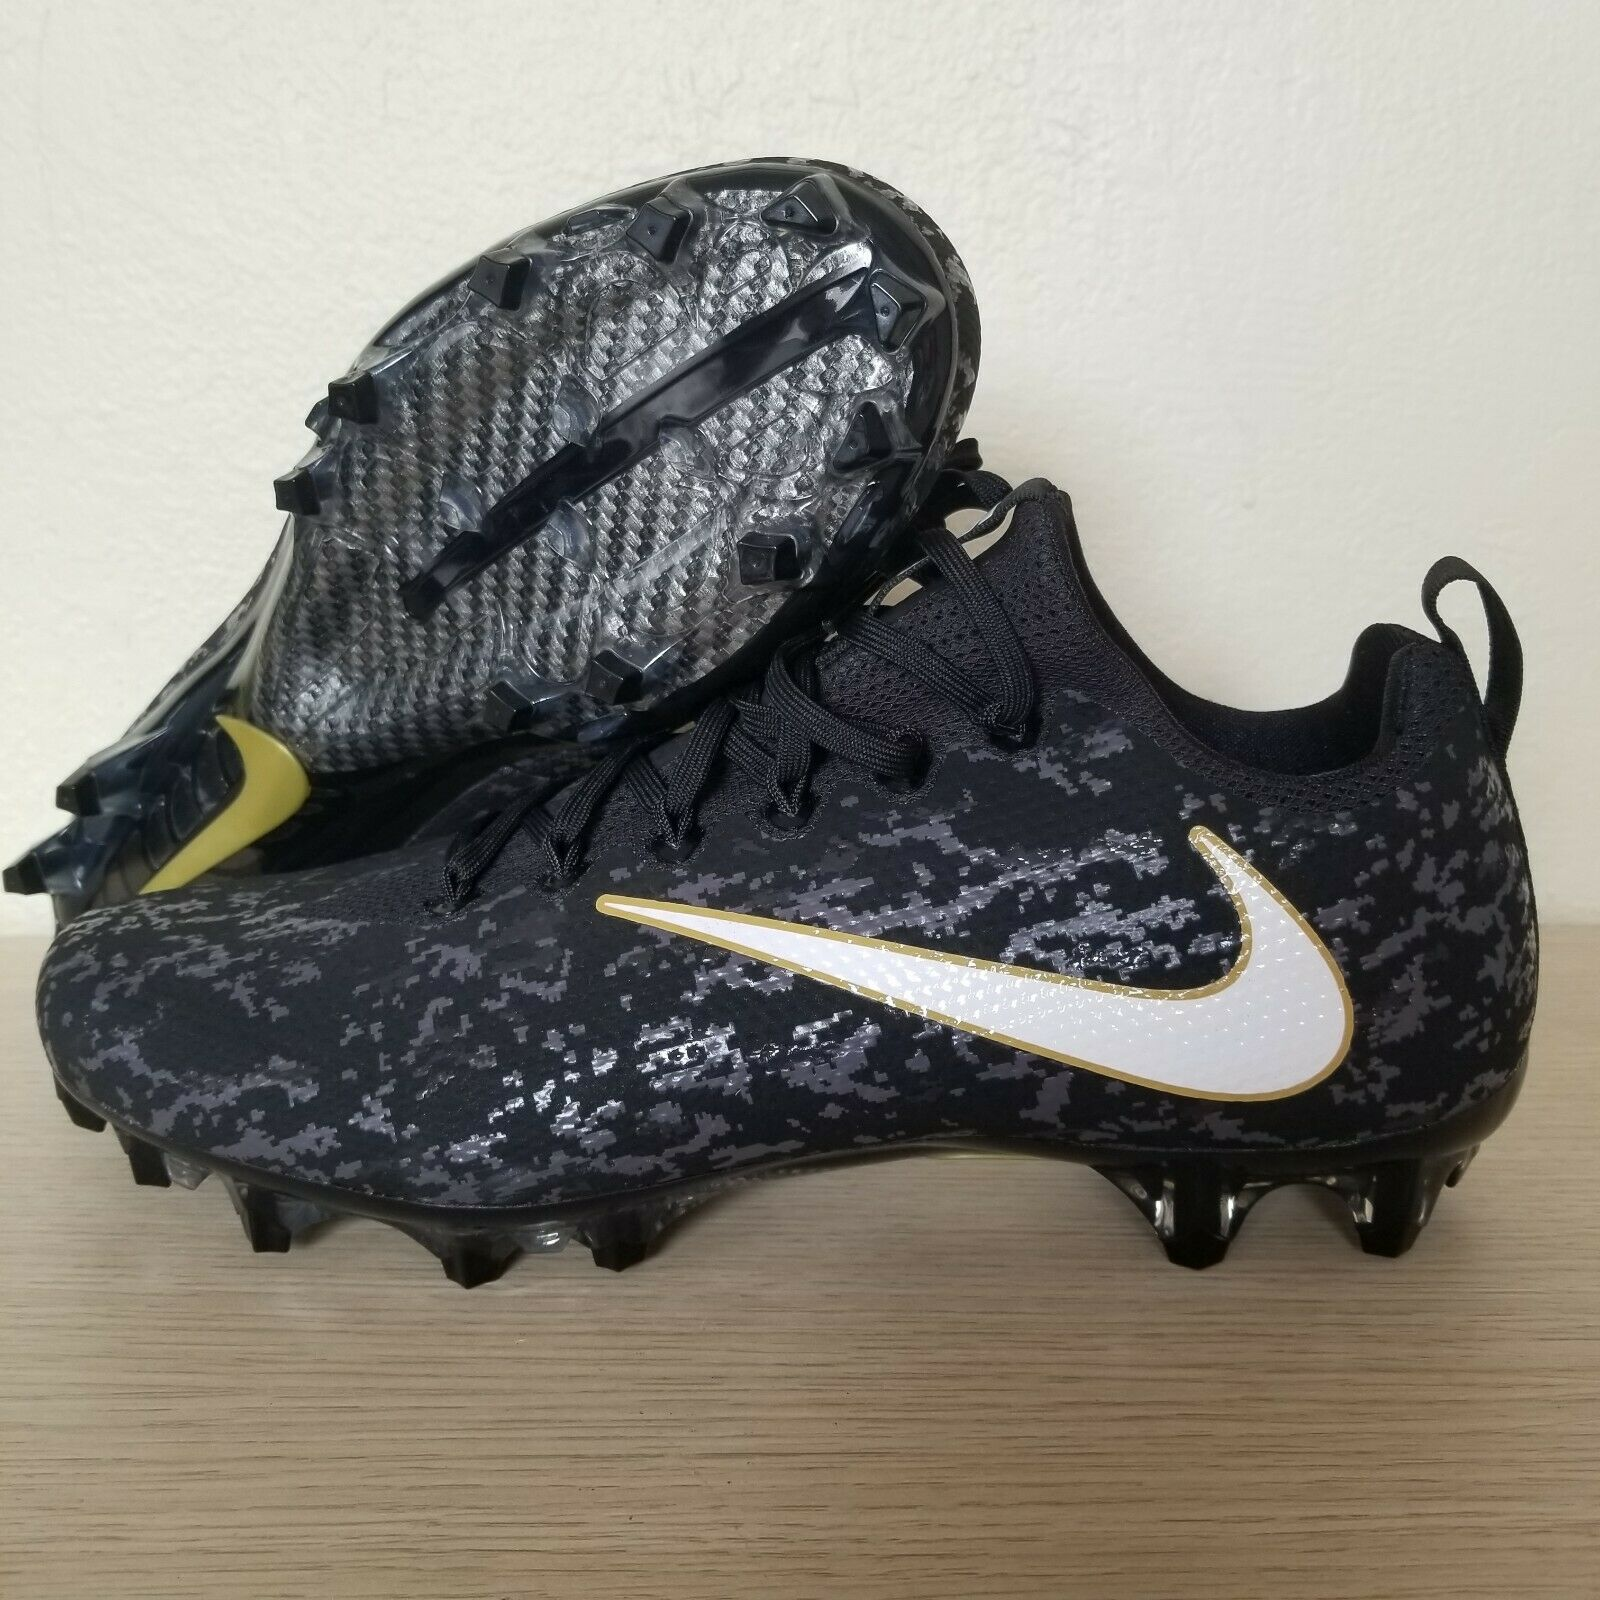 Nike Vapor Untouchable Pro Camo Football Cleats Black gold SZ ( AJ3859-017 )